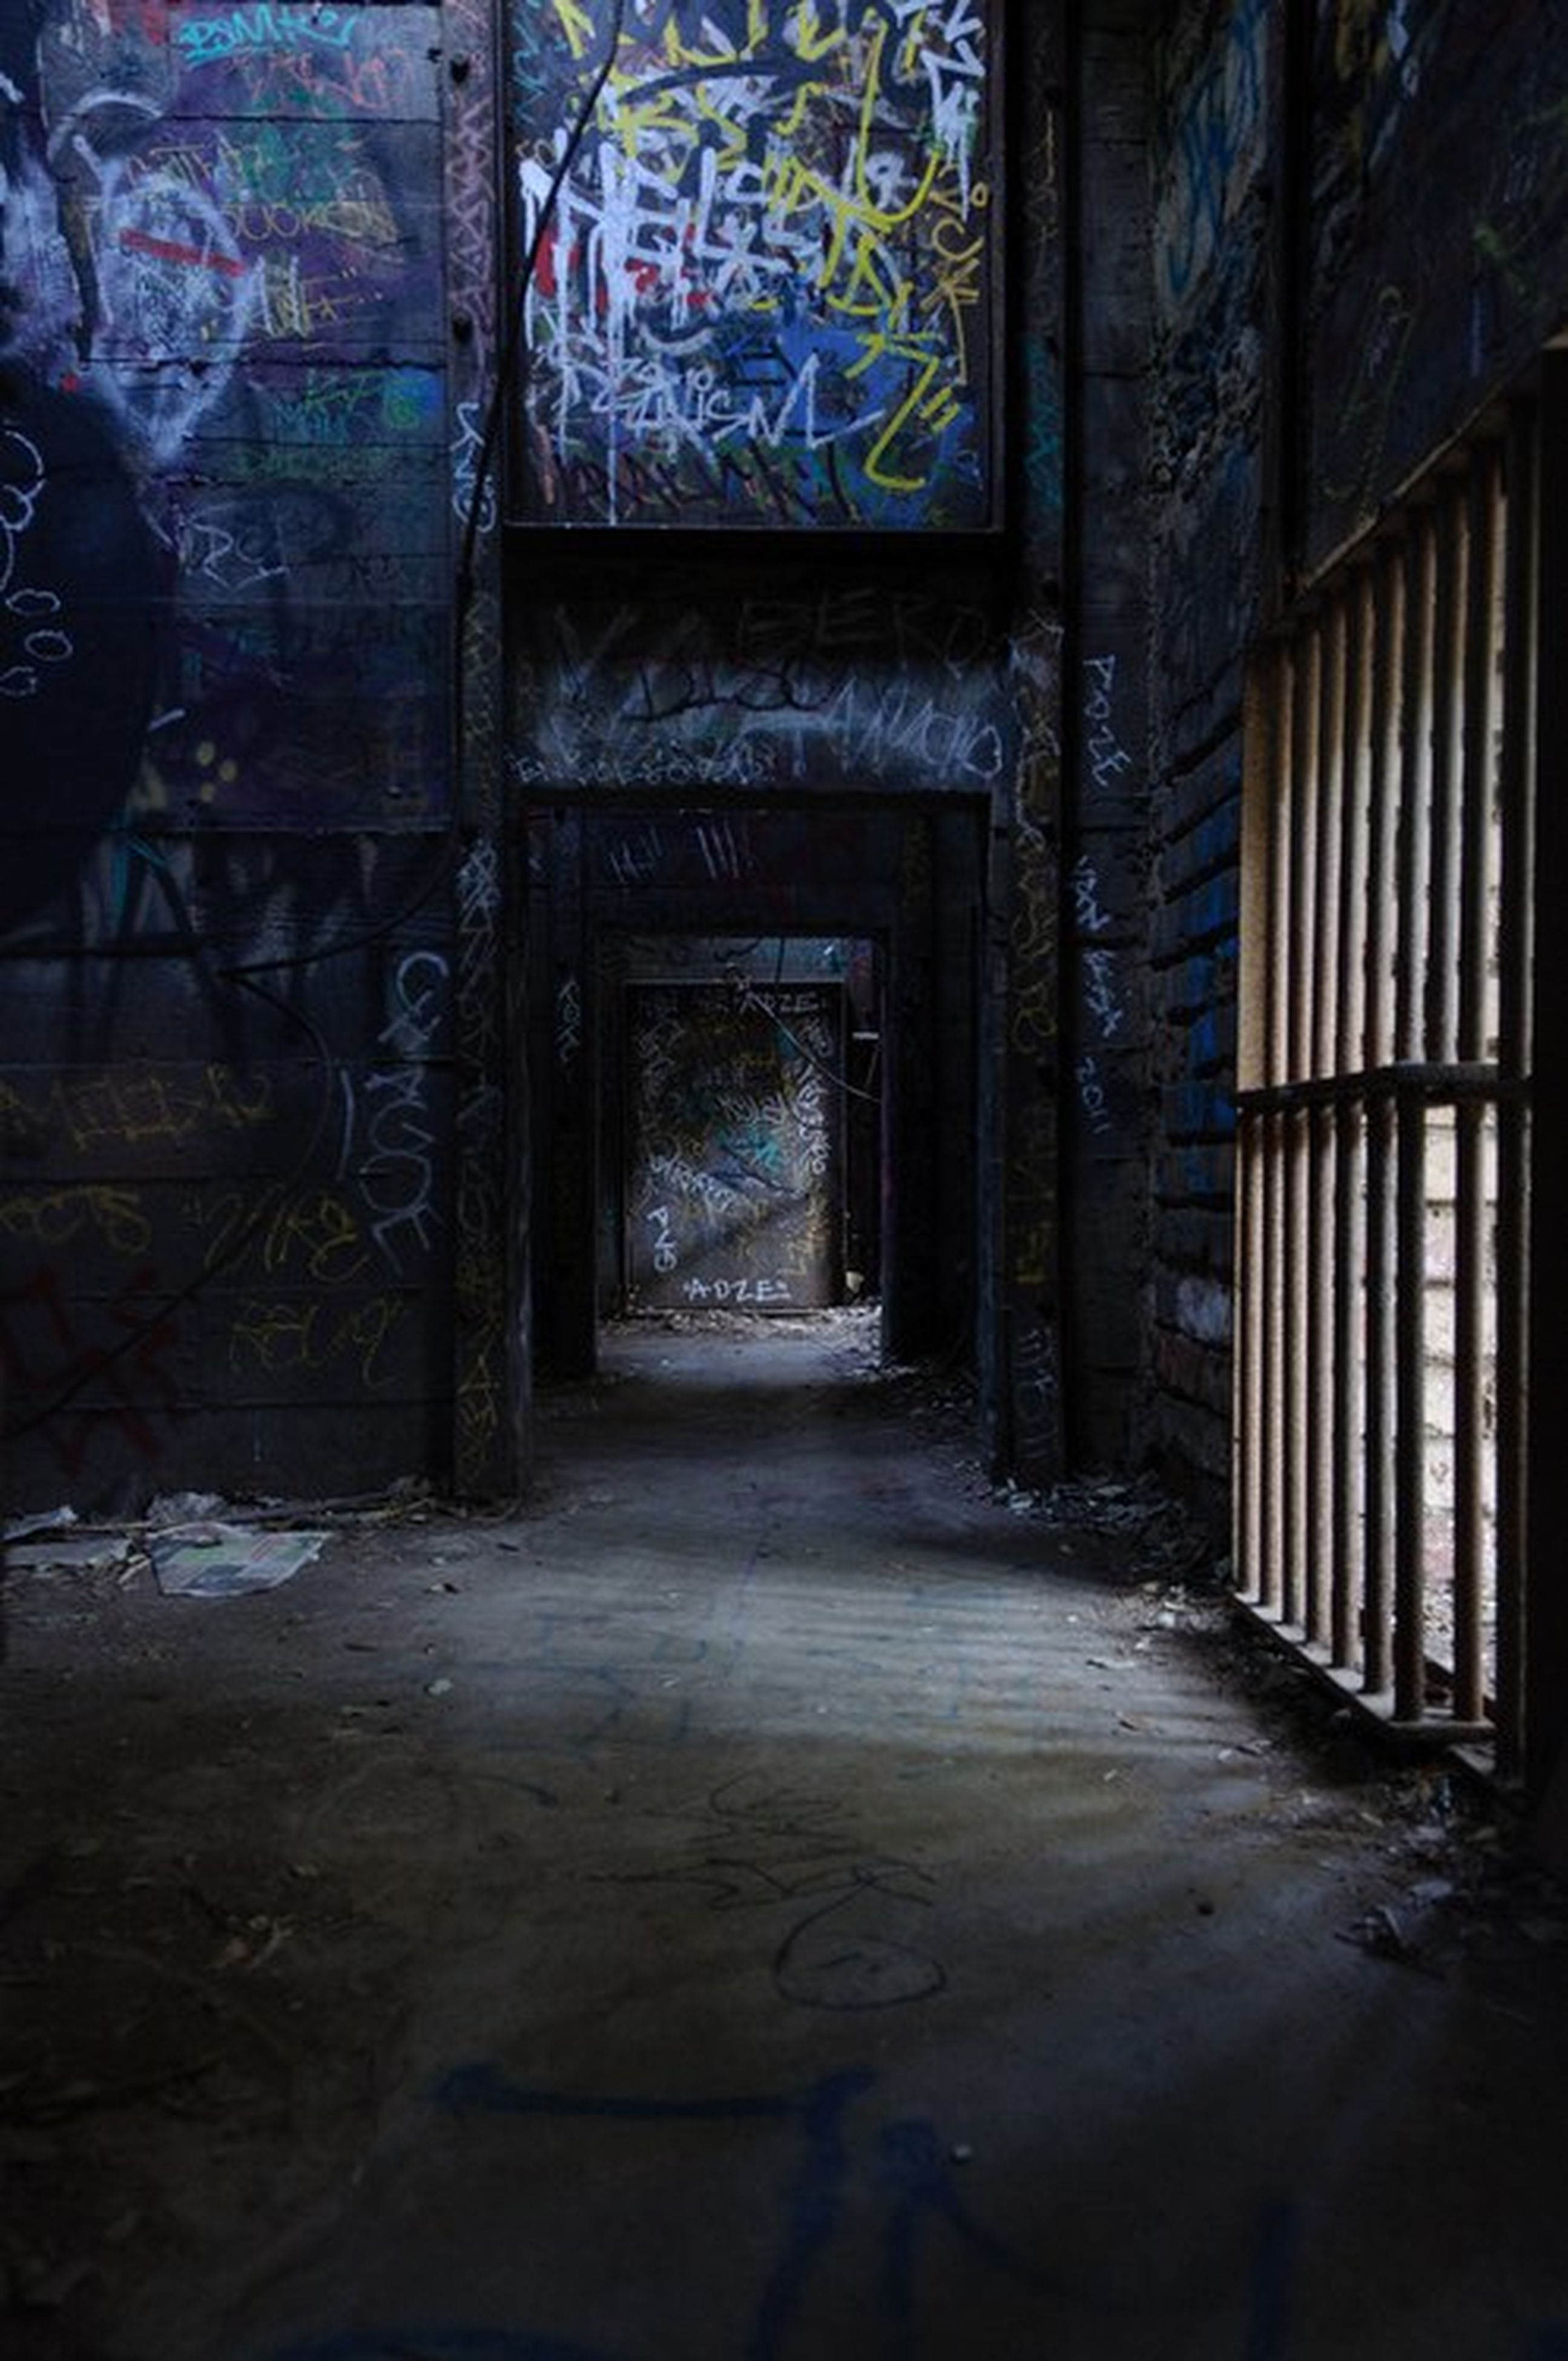 architecture, built structure, indoors, the way forward, building, abandoned, wall - building feature, building exterior, window, old, corridor, narrow, damaged, alley, sunlight, wall, empty, obsolete, deterioration, house